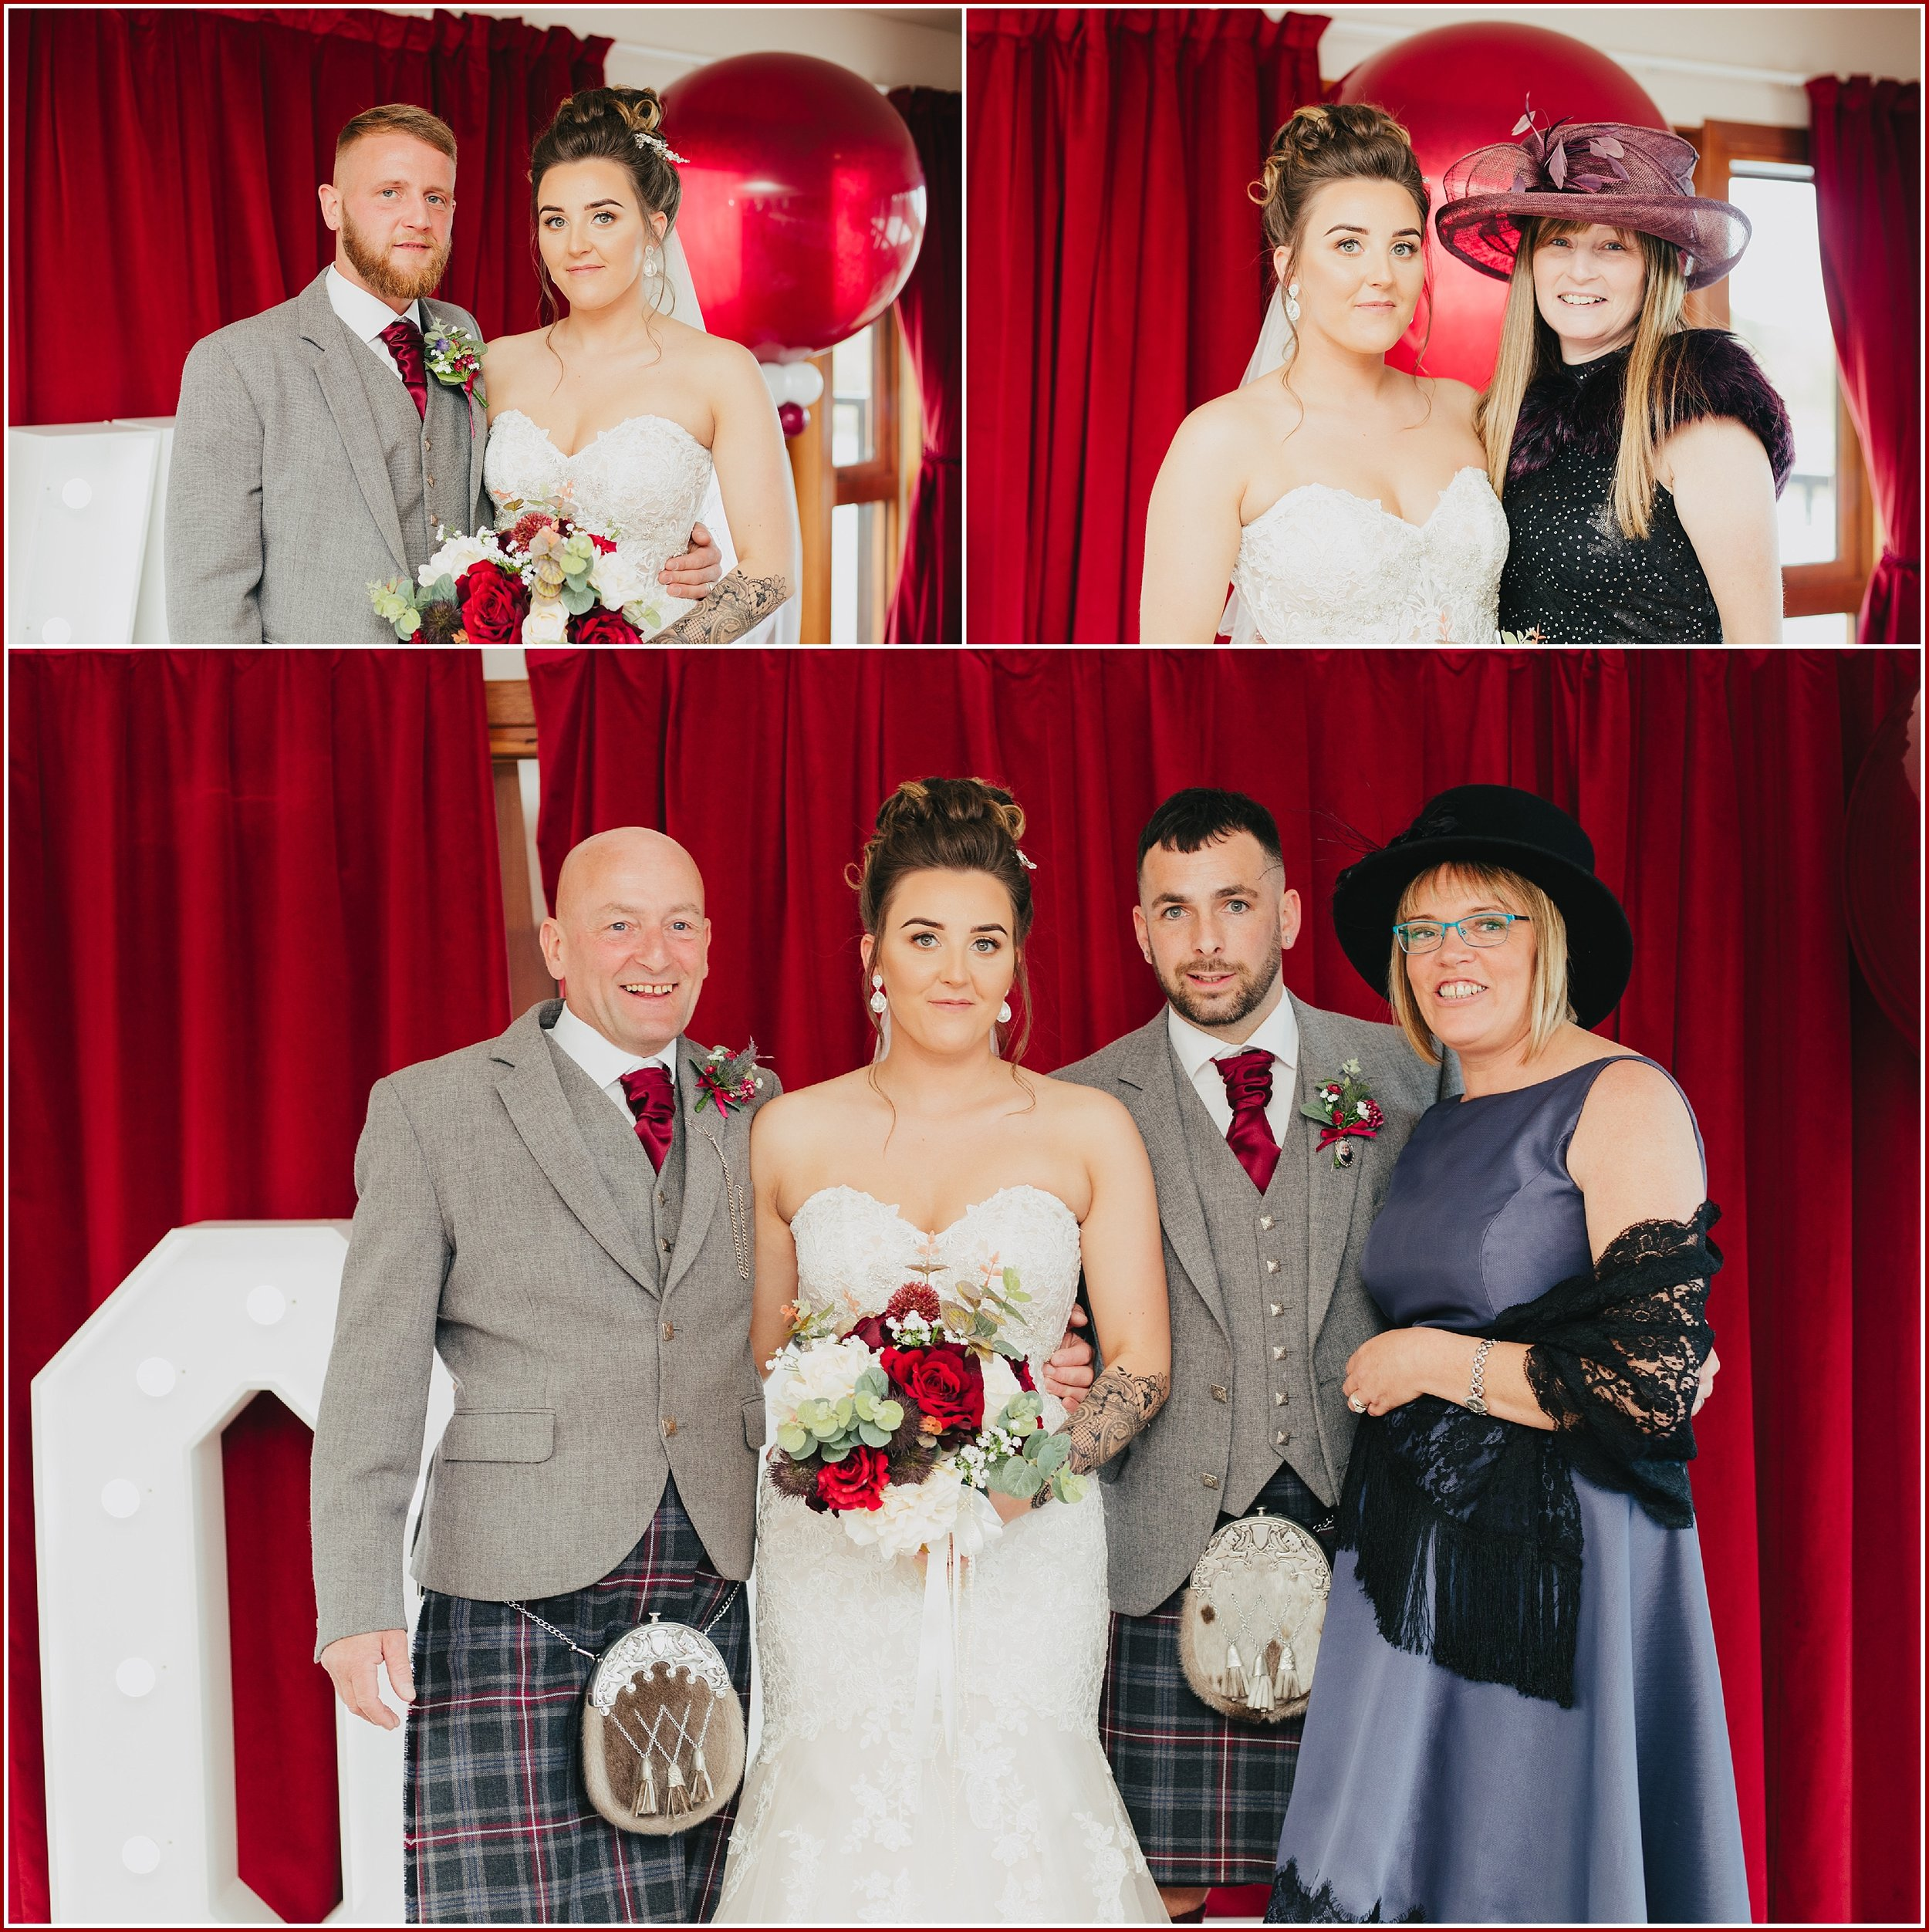 Kirsty_Brown_Wedding_Photography_0099.jpg